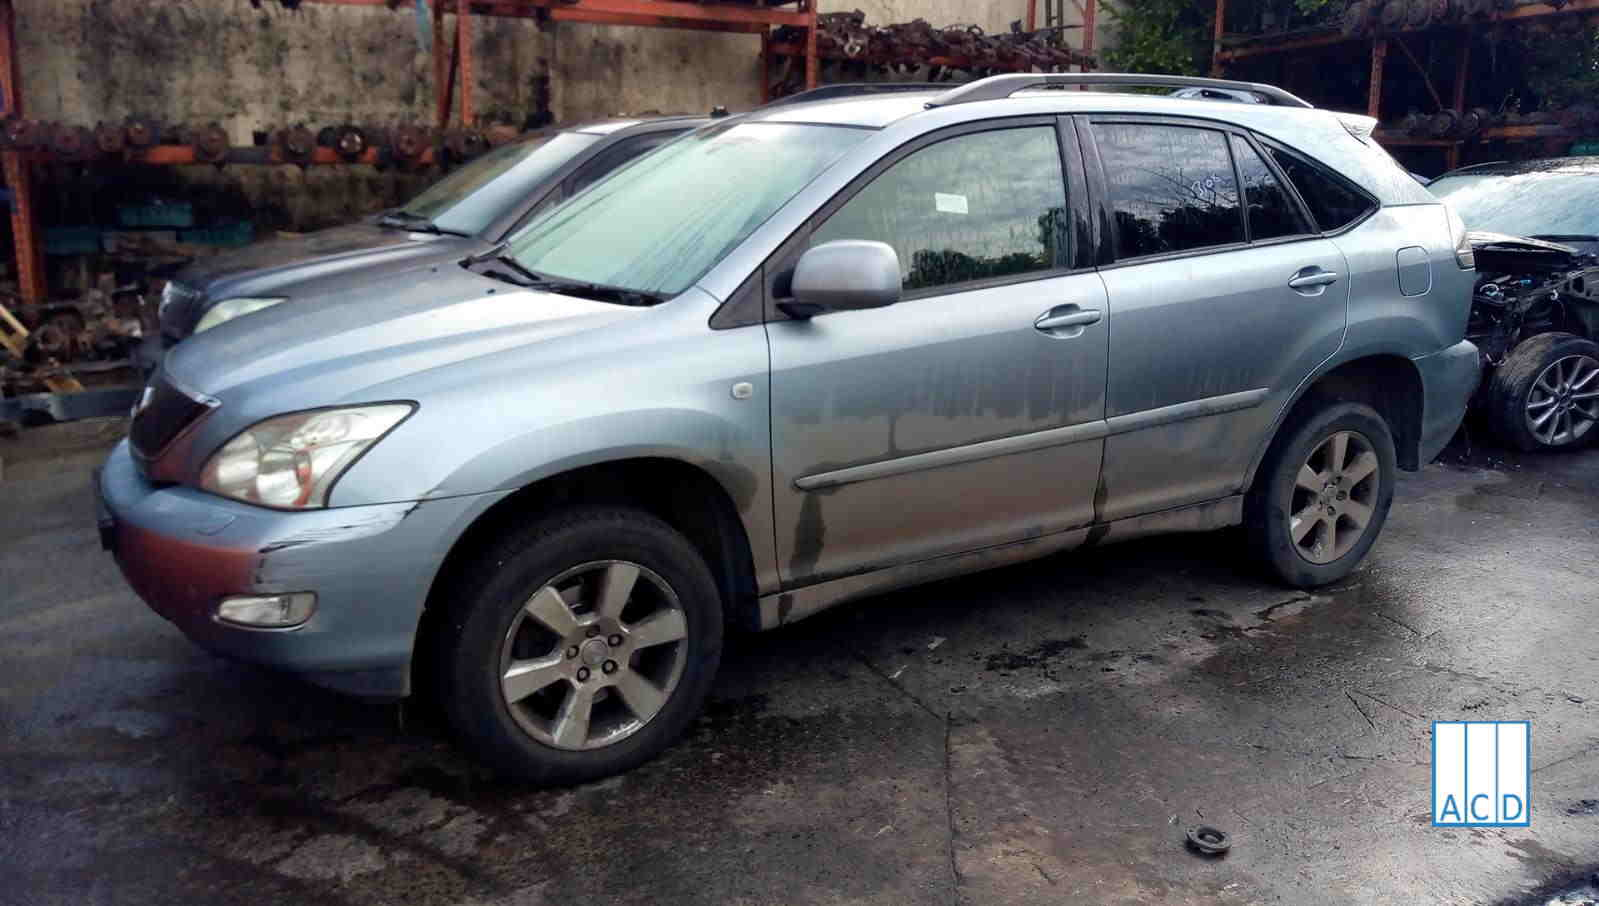 Lexus RX 300 3.0L Petrol 5-Speed Automatic 2004 #3108 01